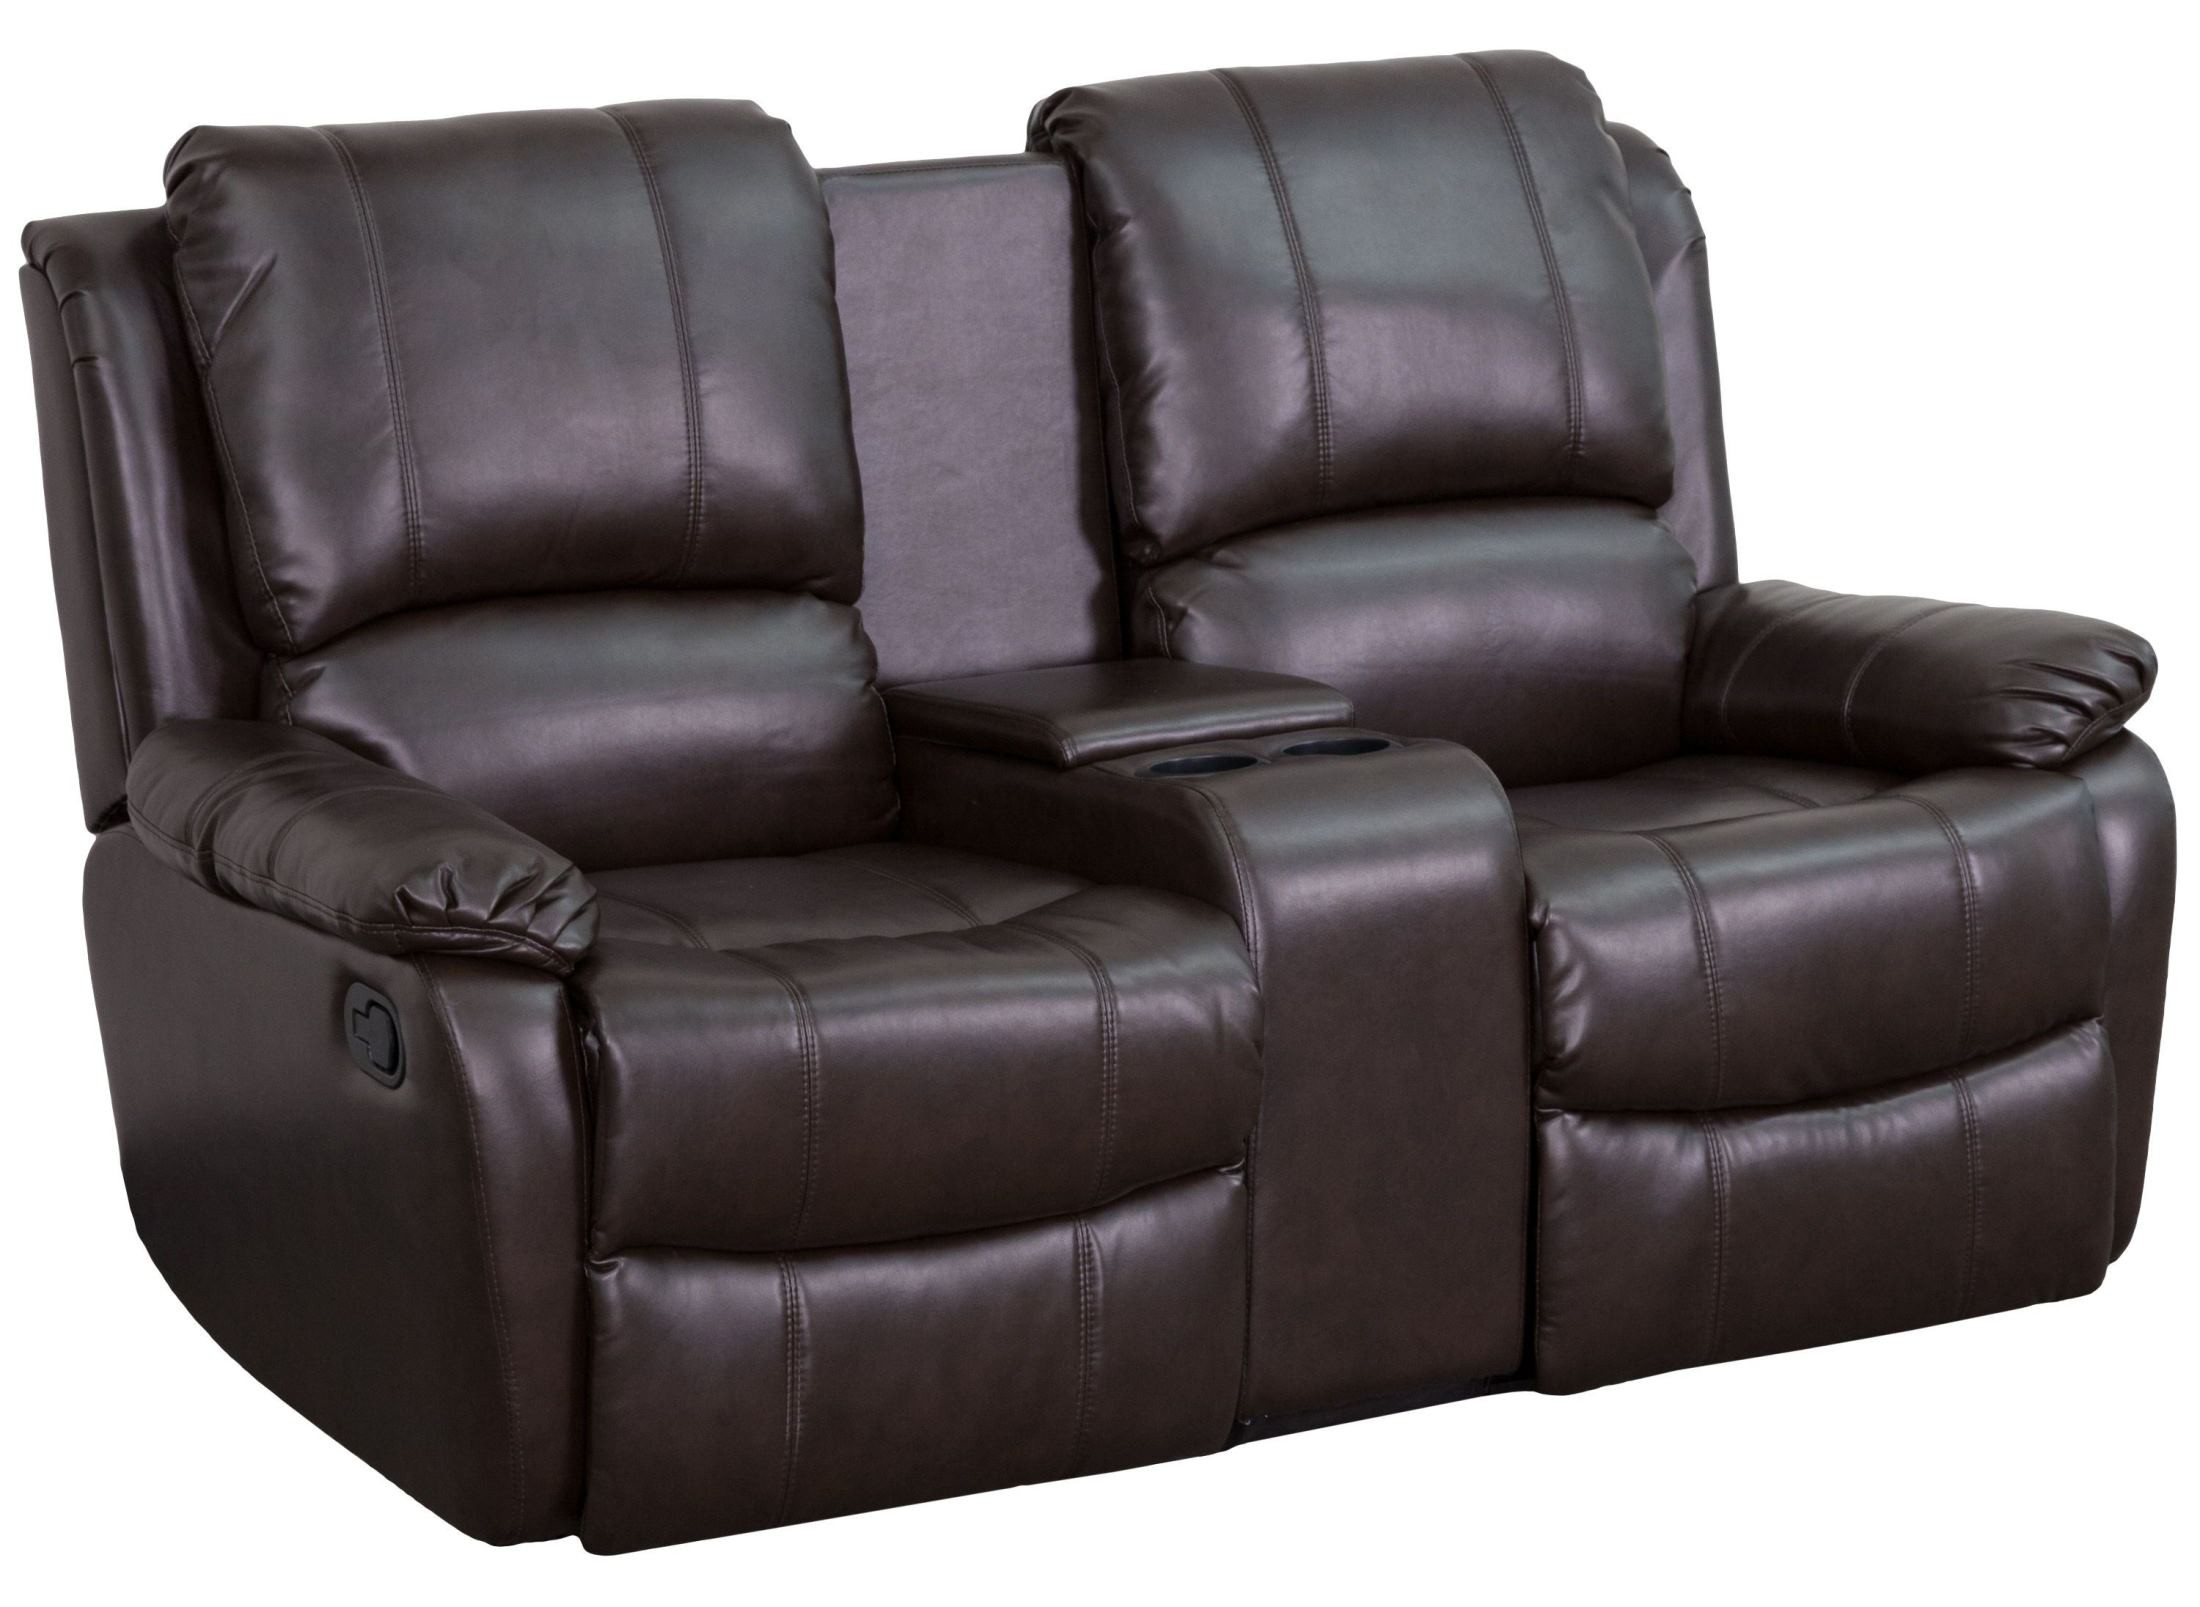 2 seat theater chairs how to hang a hammock chair indoors brown leather pillowtop home console